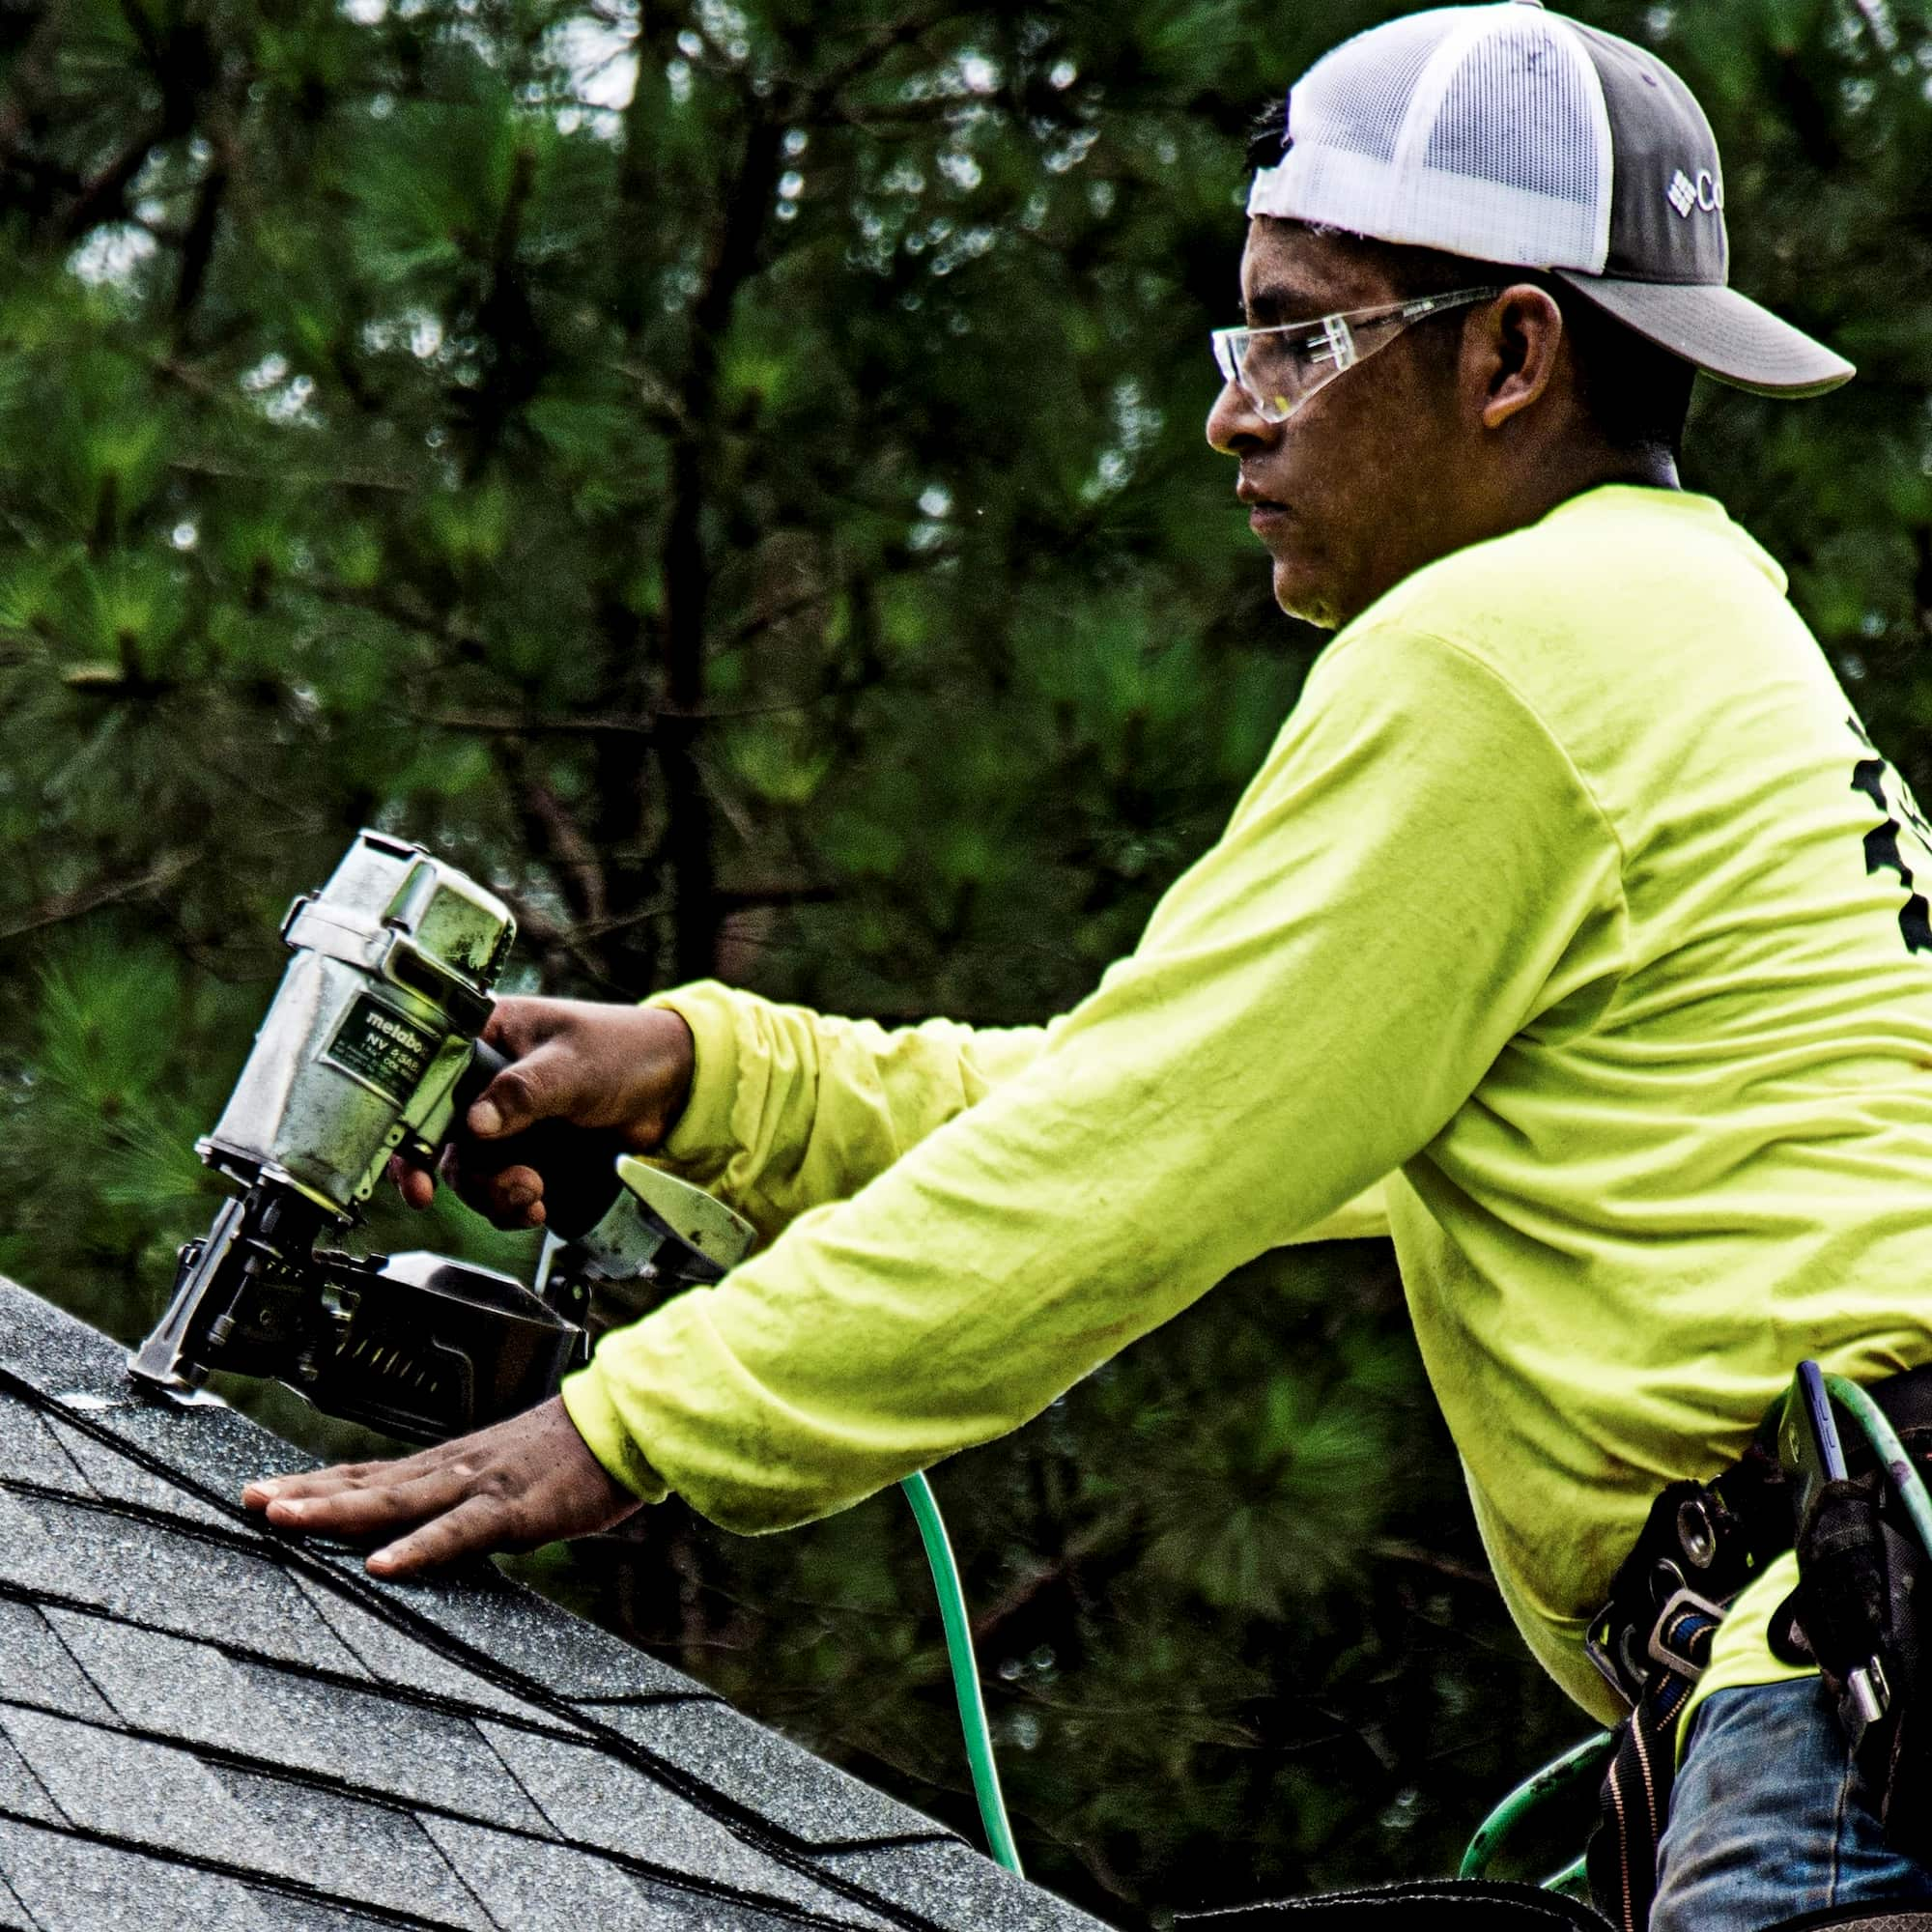 Roofing Nailer Lifestyle